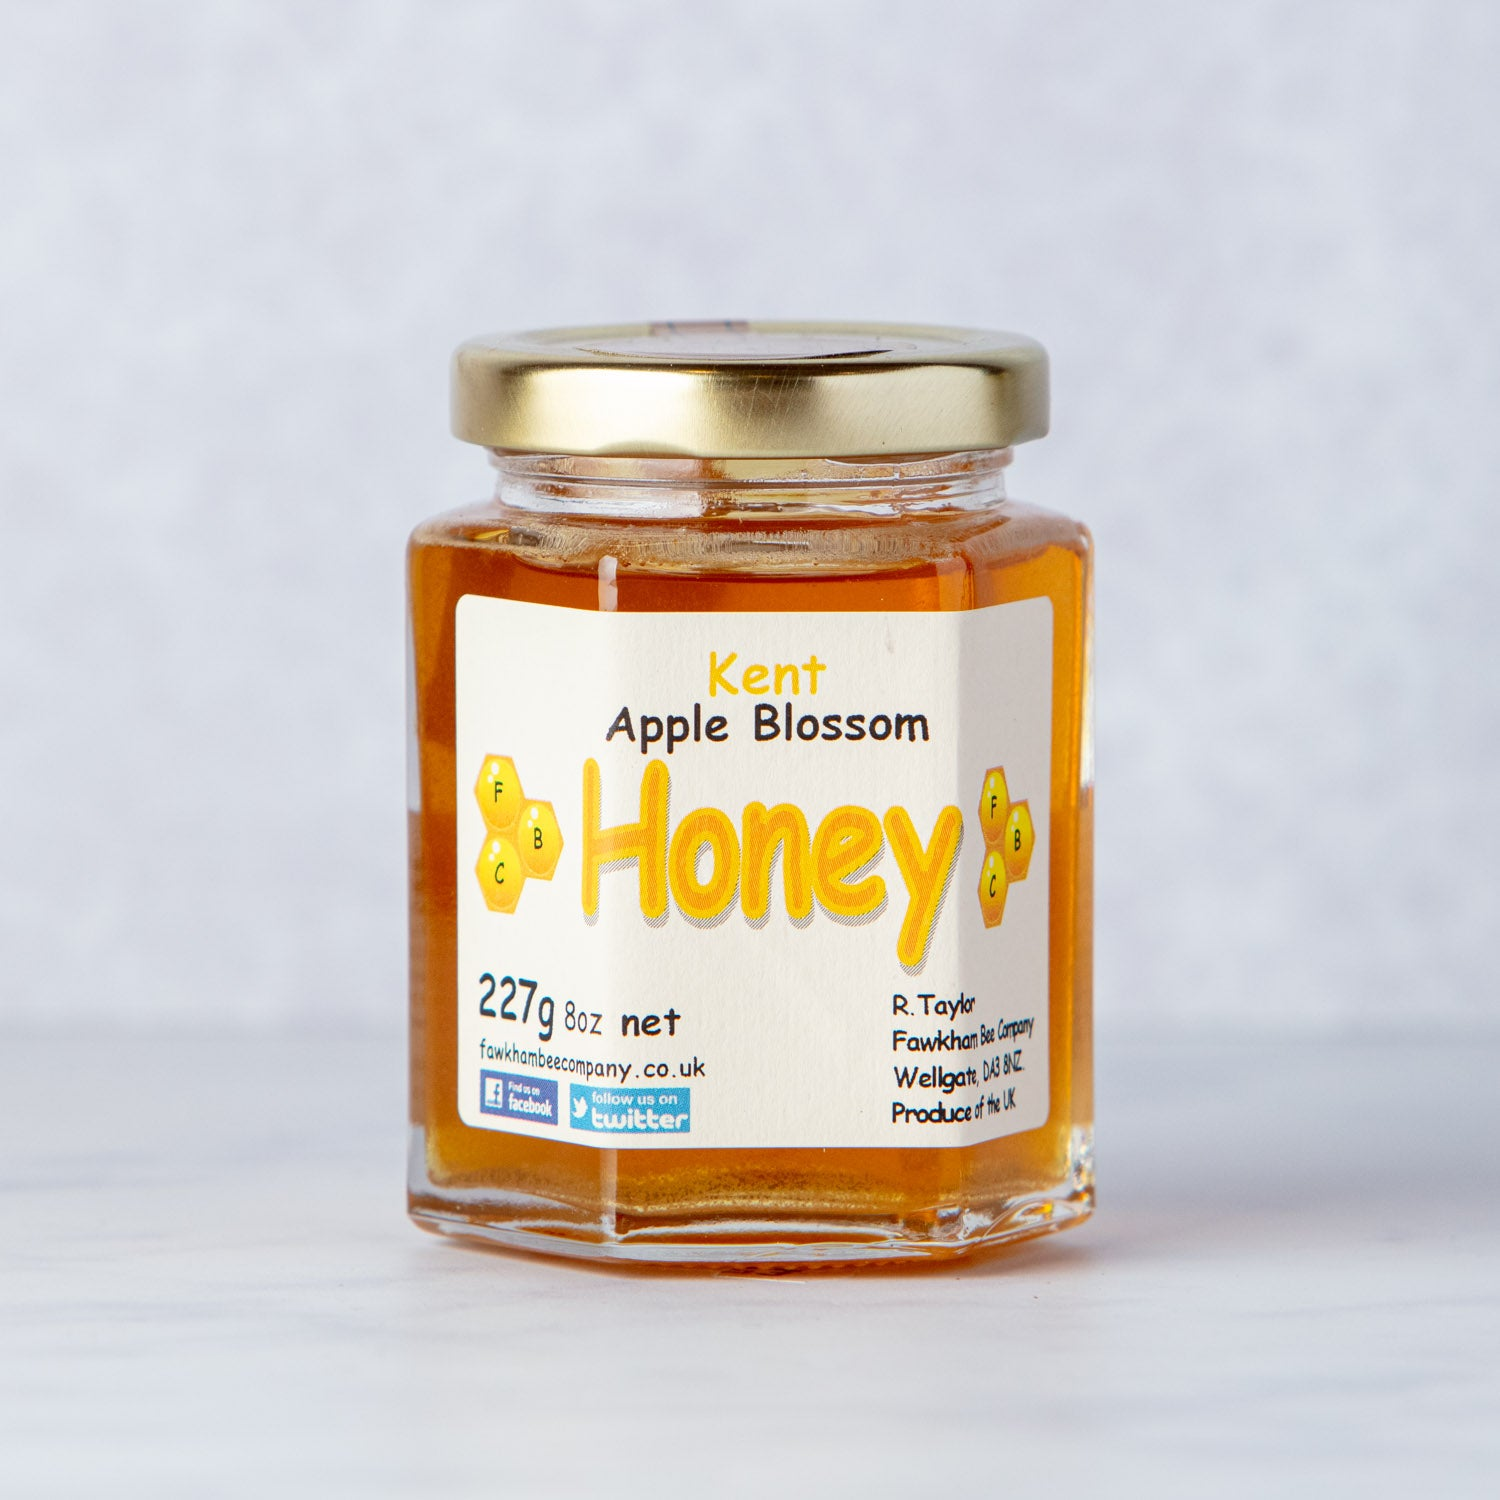 KENT APPLE BLOSSOM HONEY - LIQUID 227g